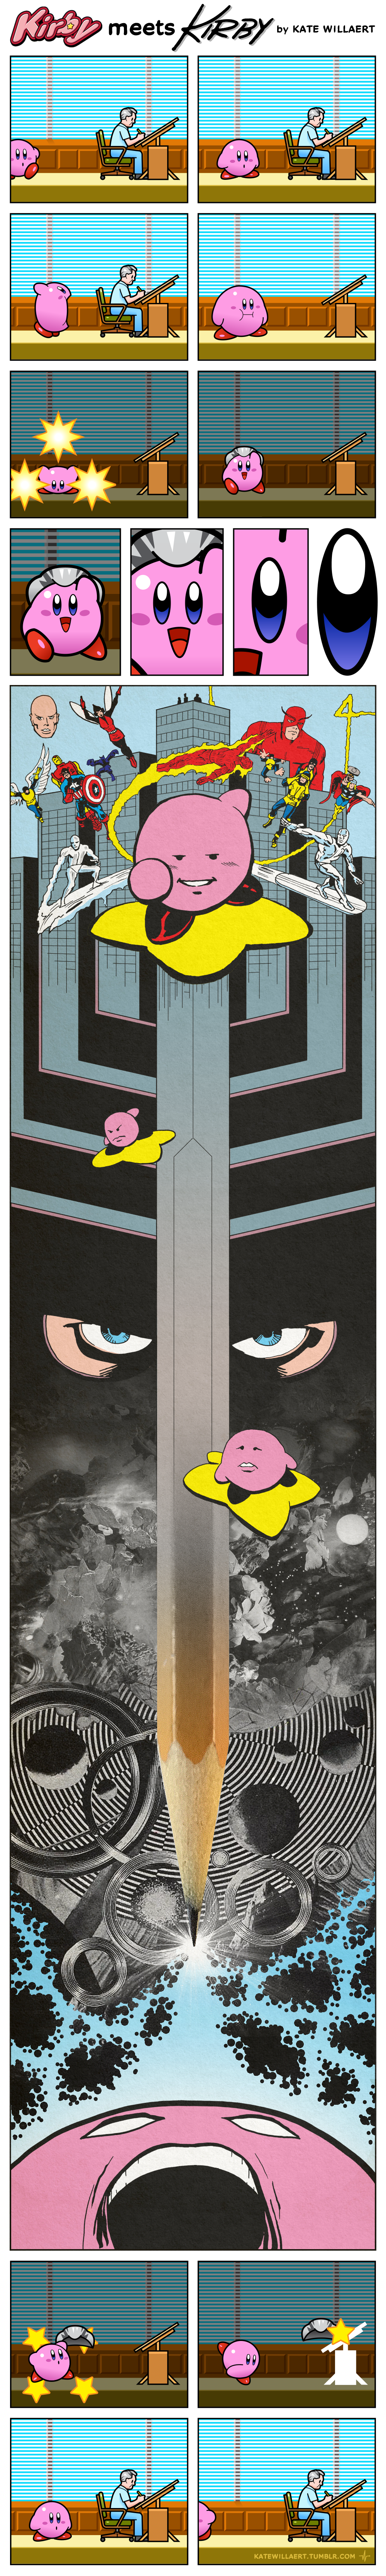 Kirby Meets Kirby by Kate Willaert